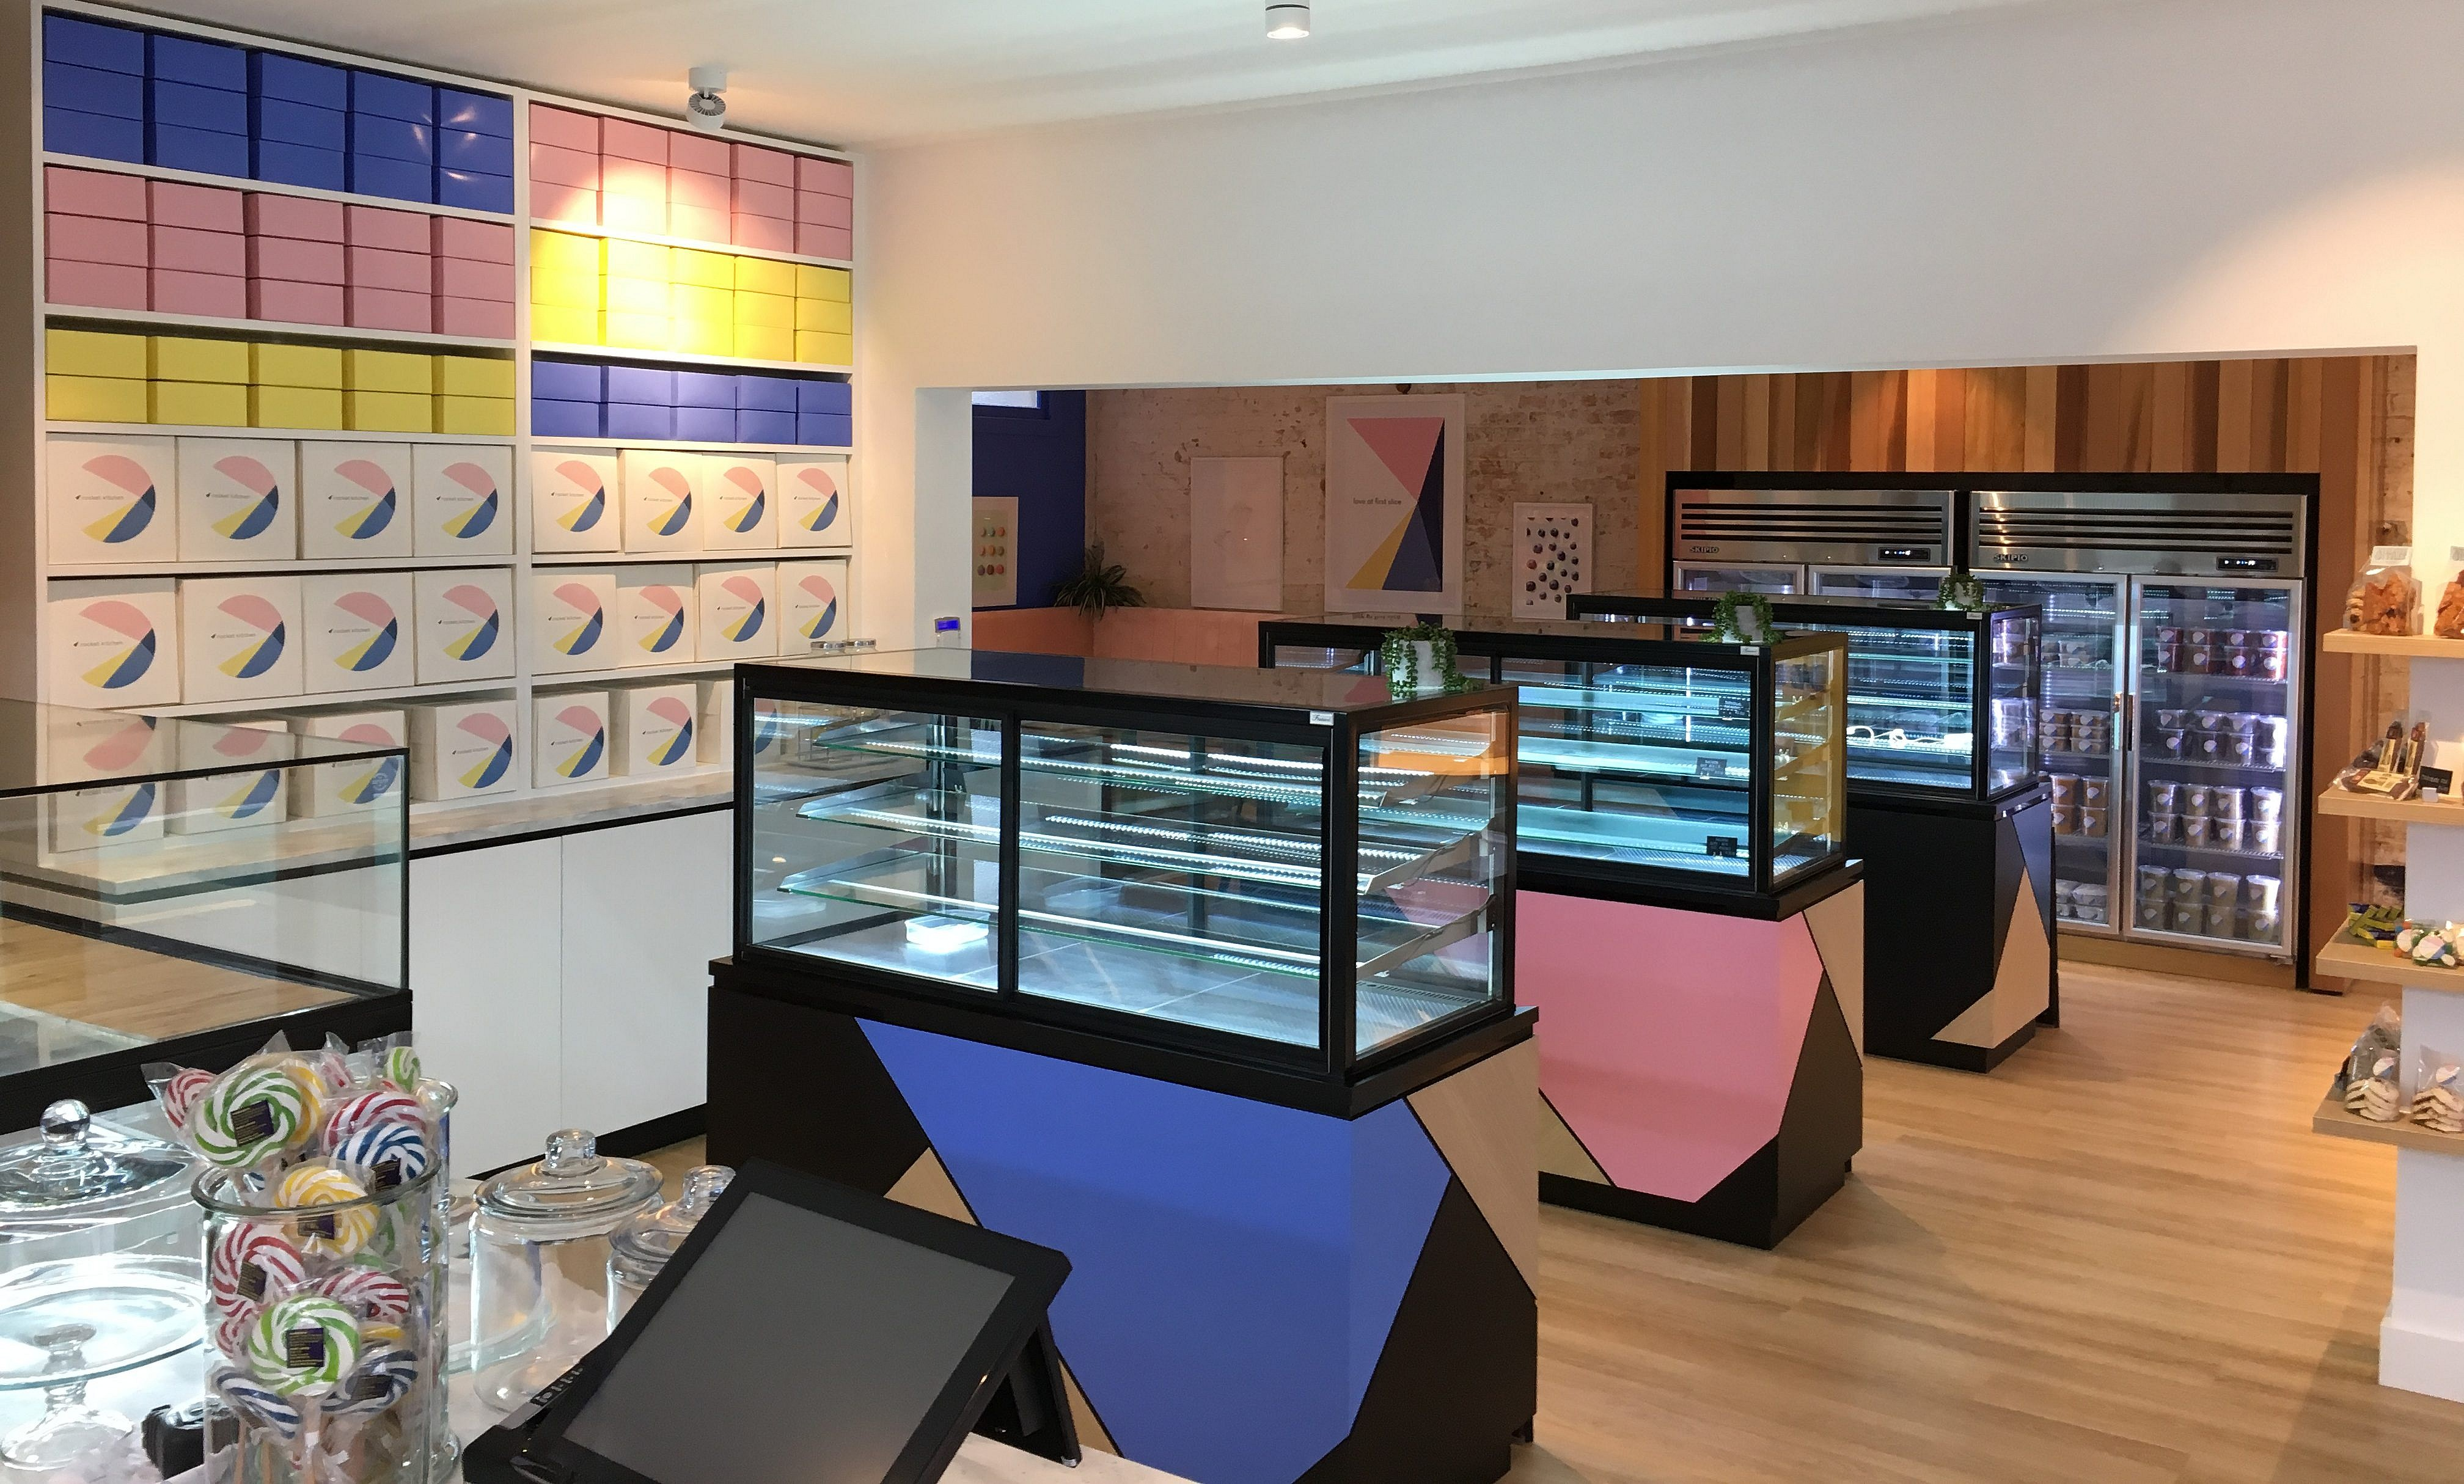 Datum Projects fitout of Rocket Kitchen